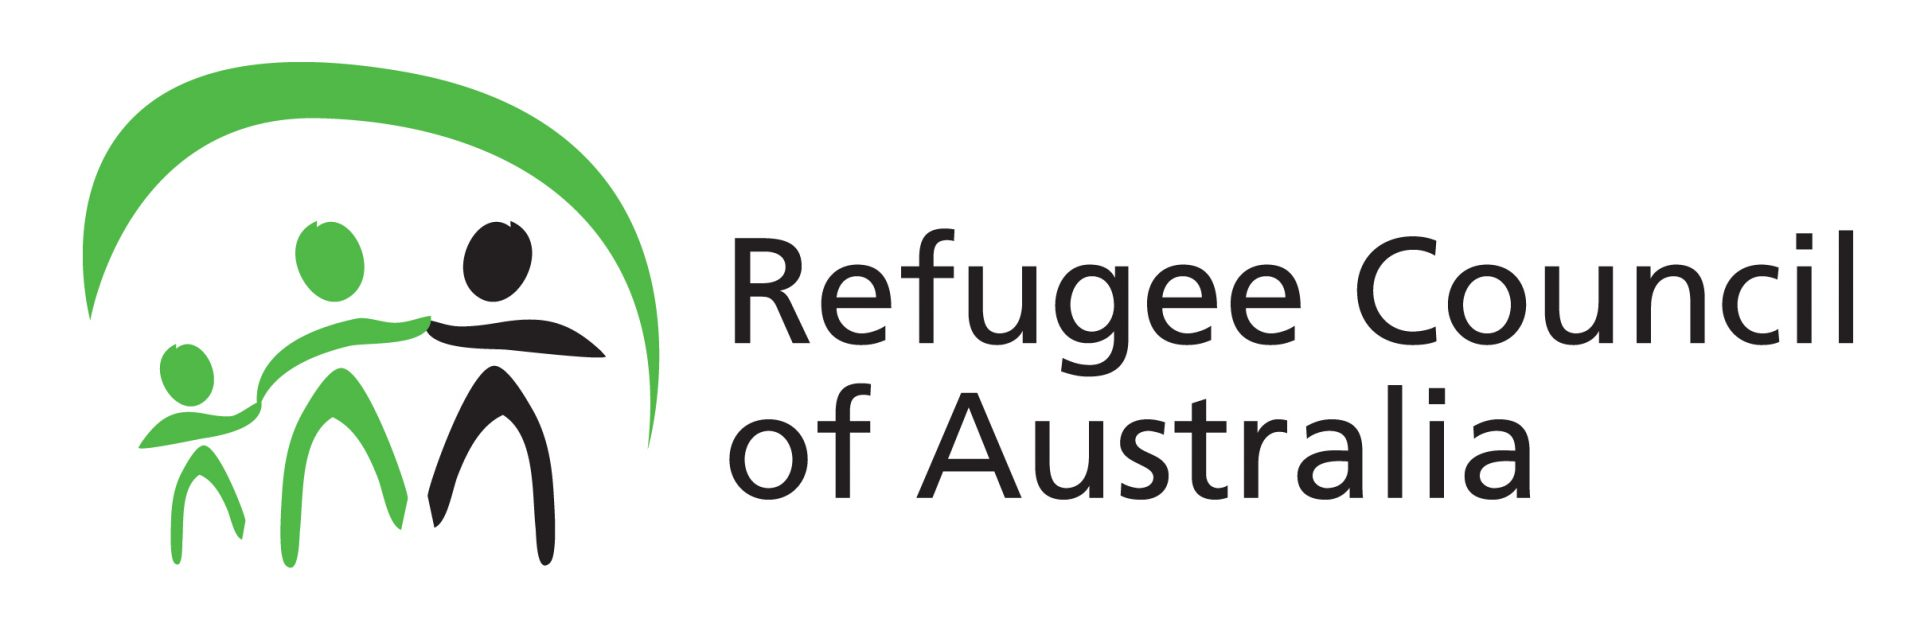 Colour logo of Refugee Council of Australia